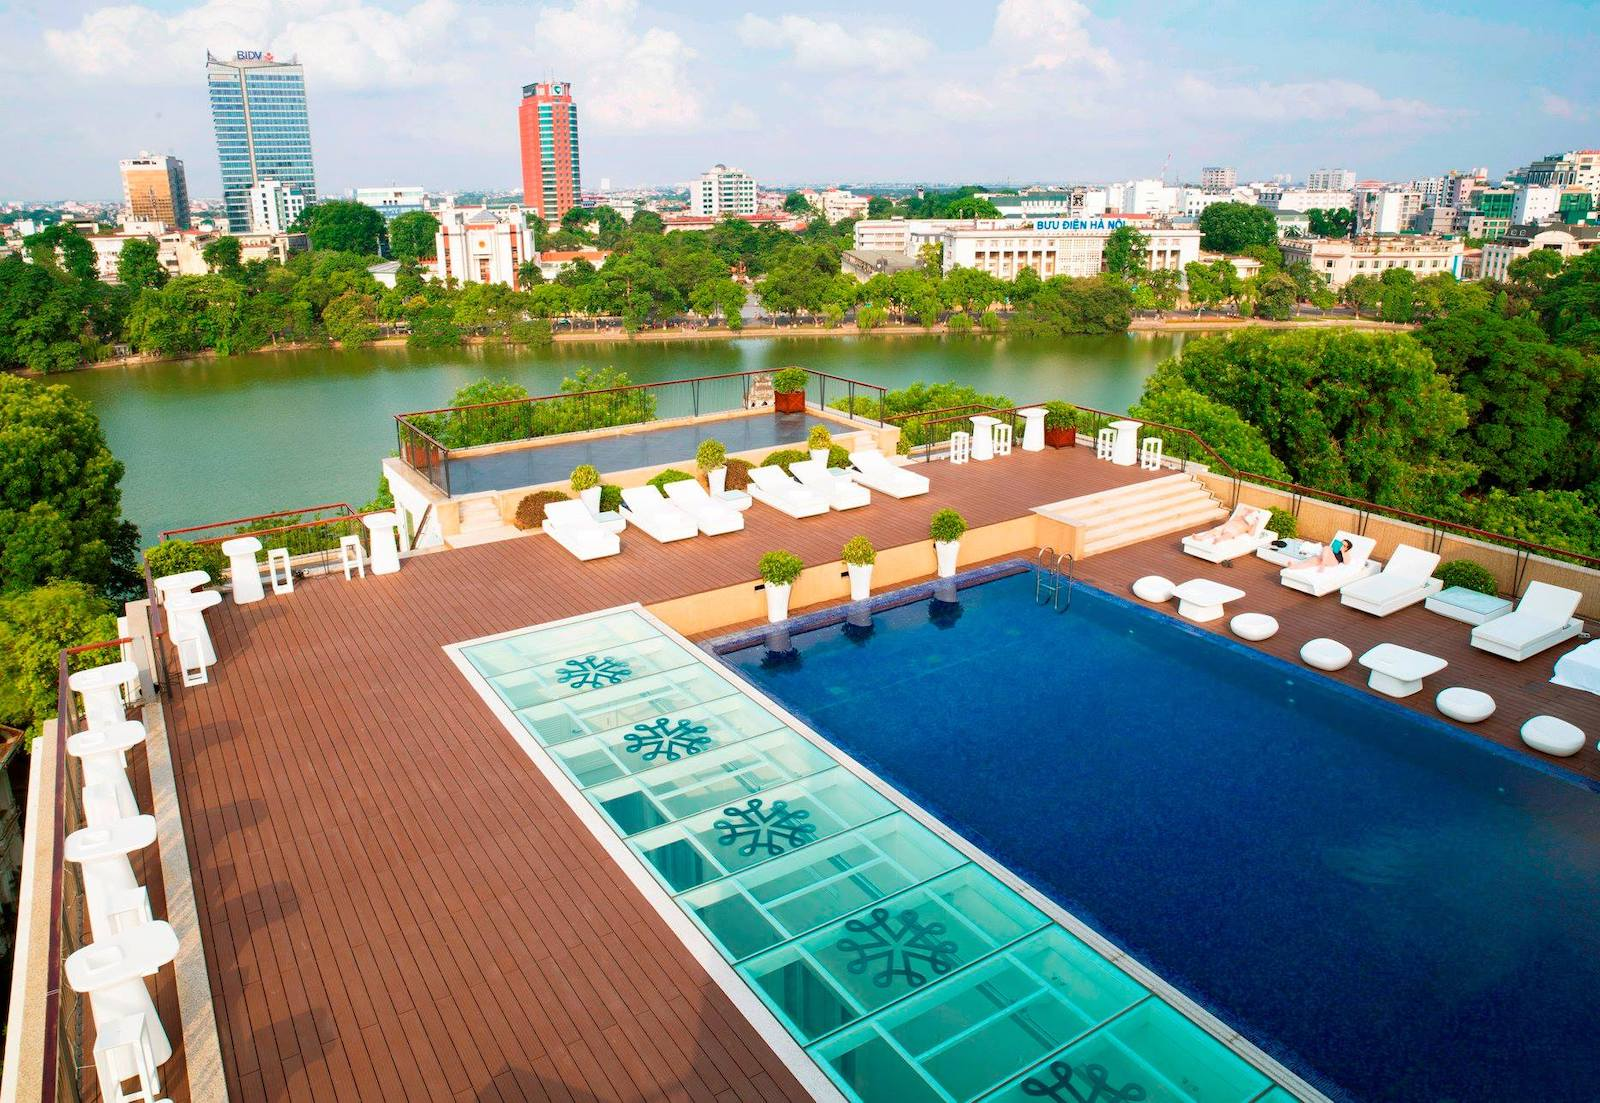 Image of the rooftop pool at the Apricot Hotel in Hanoi, Vietnam